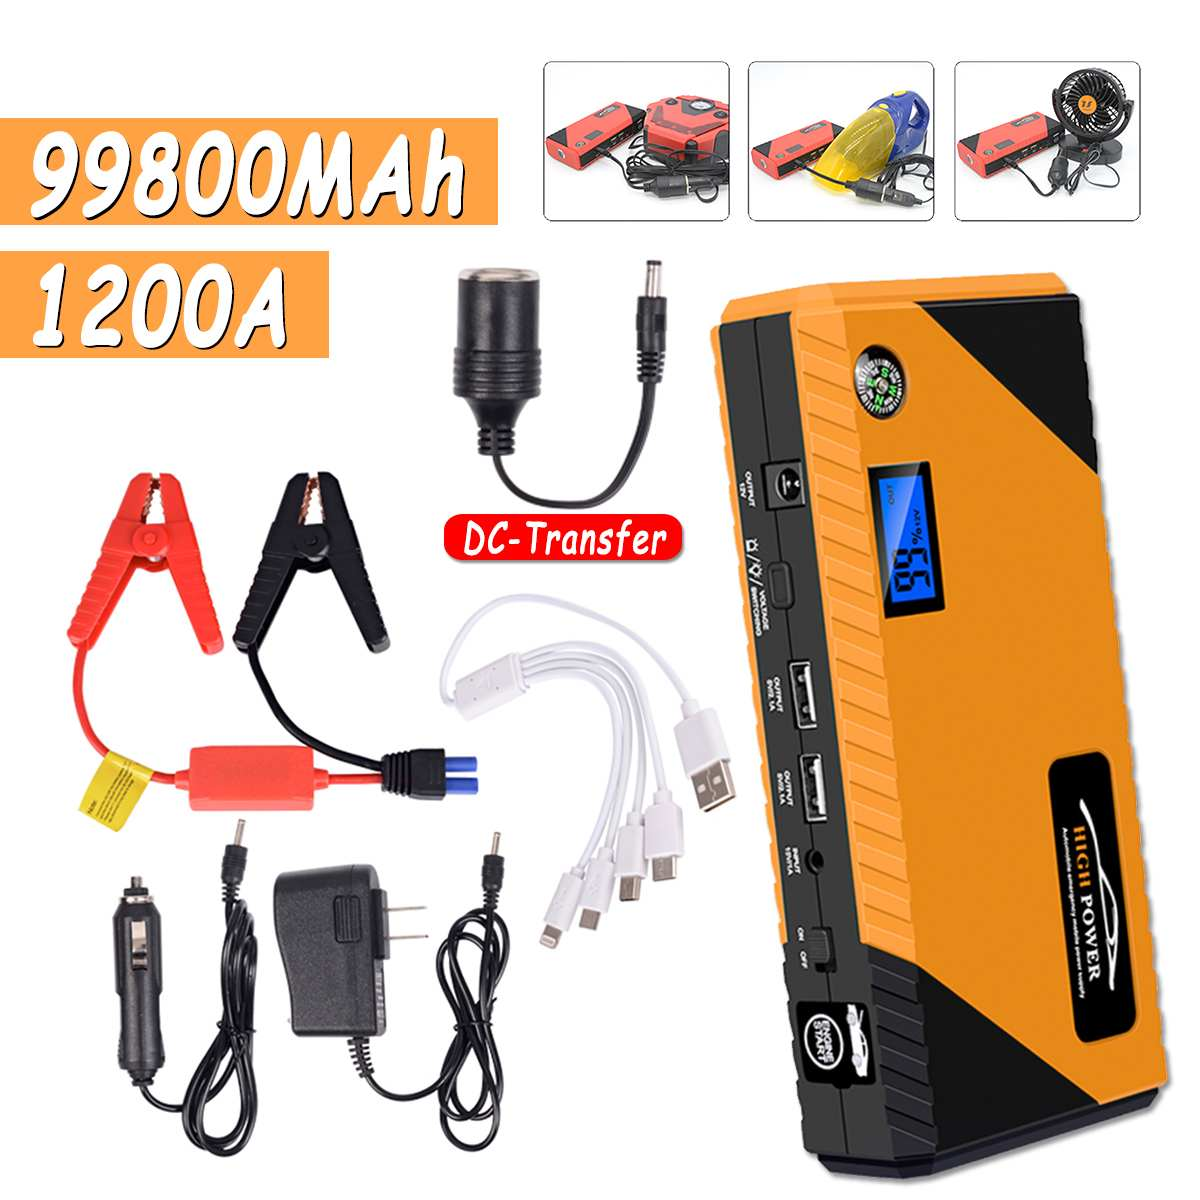 Dual USB Portable Car Jump Starter Pack Booster Charger Battery Power Bank 99800mAh LED Flash Light Starting Device Car Battery